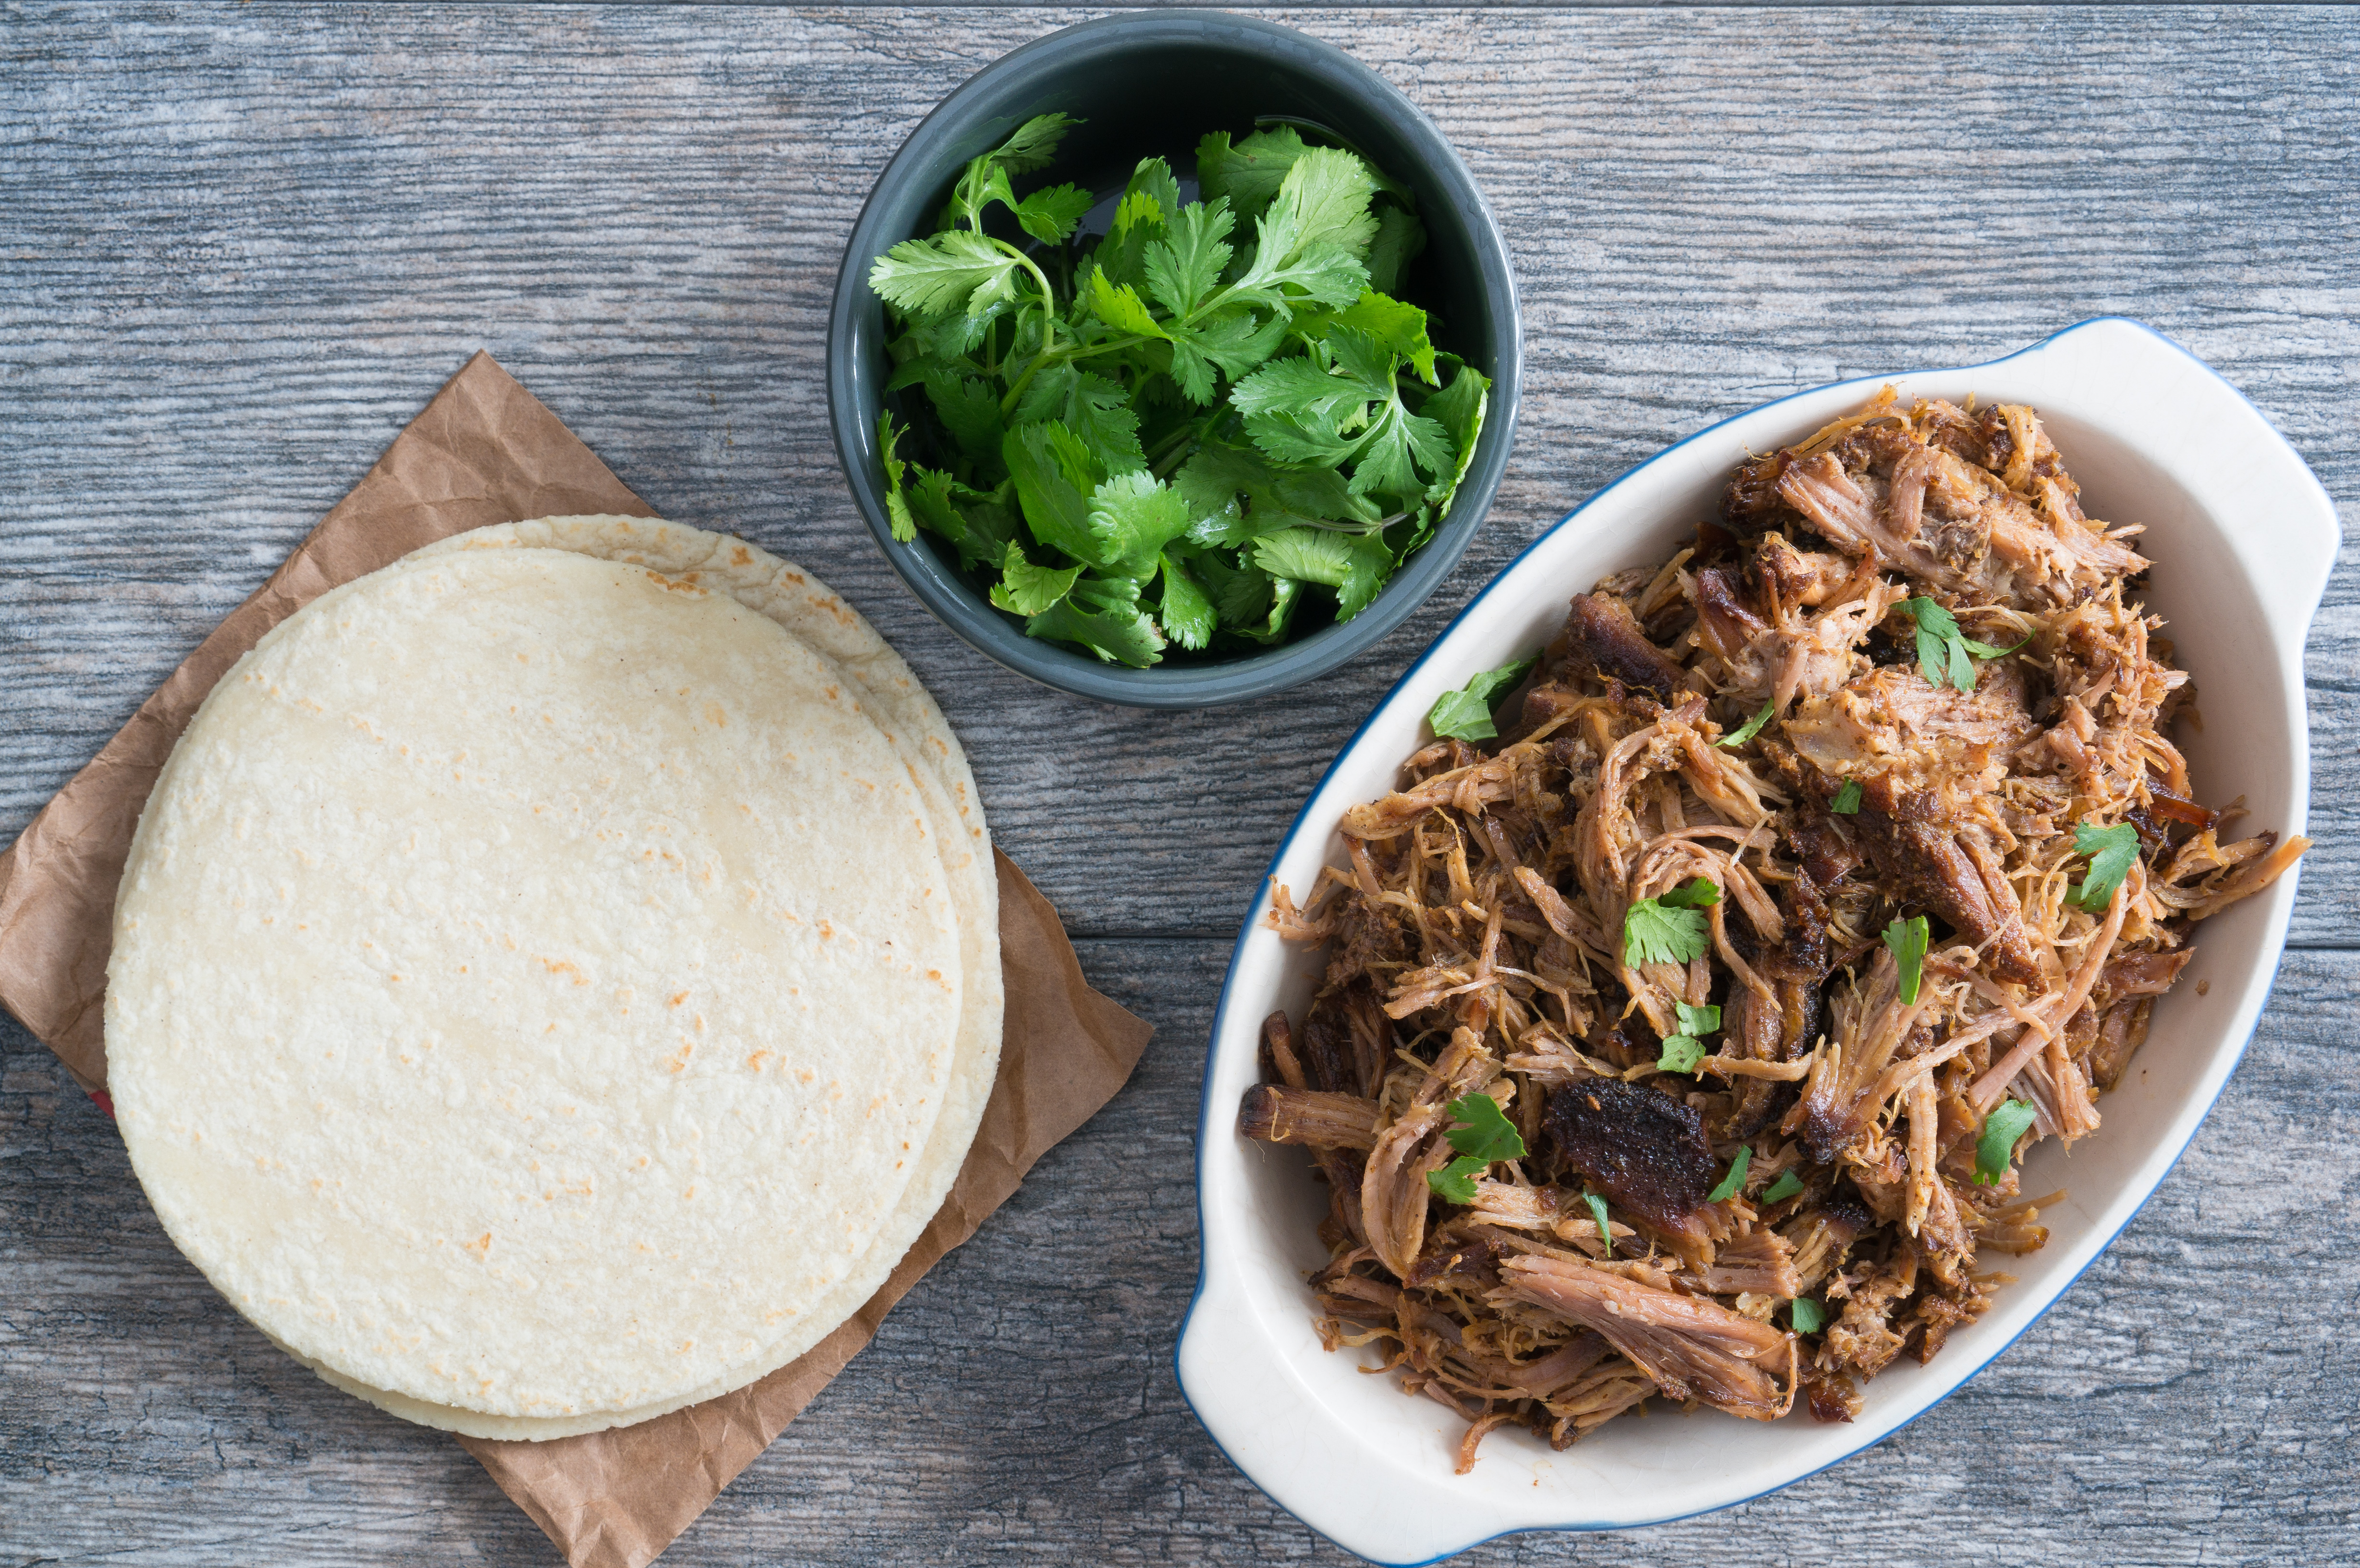 Crispy Crockpot Carnitas – Easy recipe for homemade Crispy Crockpot Carnitas. Gluten-free and paleo-friendly! Perfect for tacos, burritos, nachos, enchiladas, sandwiches, and more! Just combine pork shoulder with a simple dry-rub & a squeeze of citrus, then let your slow cooker do the rest. We love this on top of eggs for a quick, savory breakfast! ♥ | freeyourfork.com